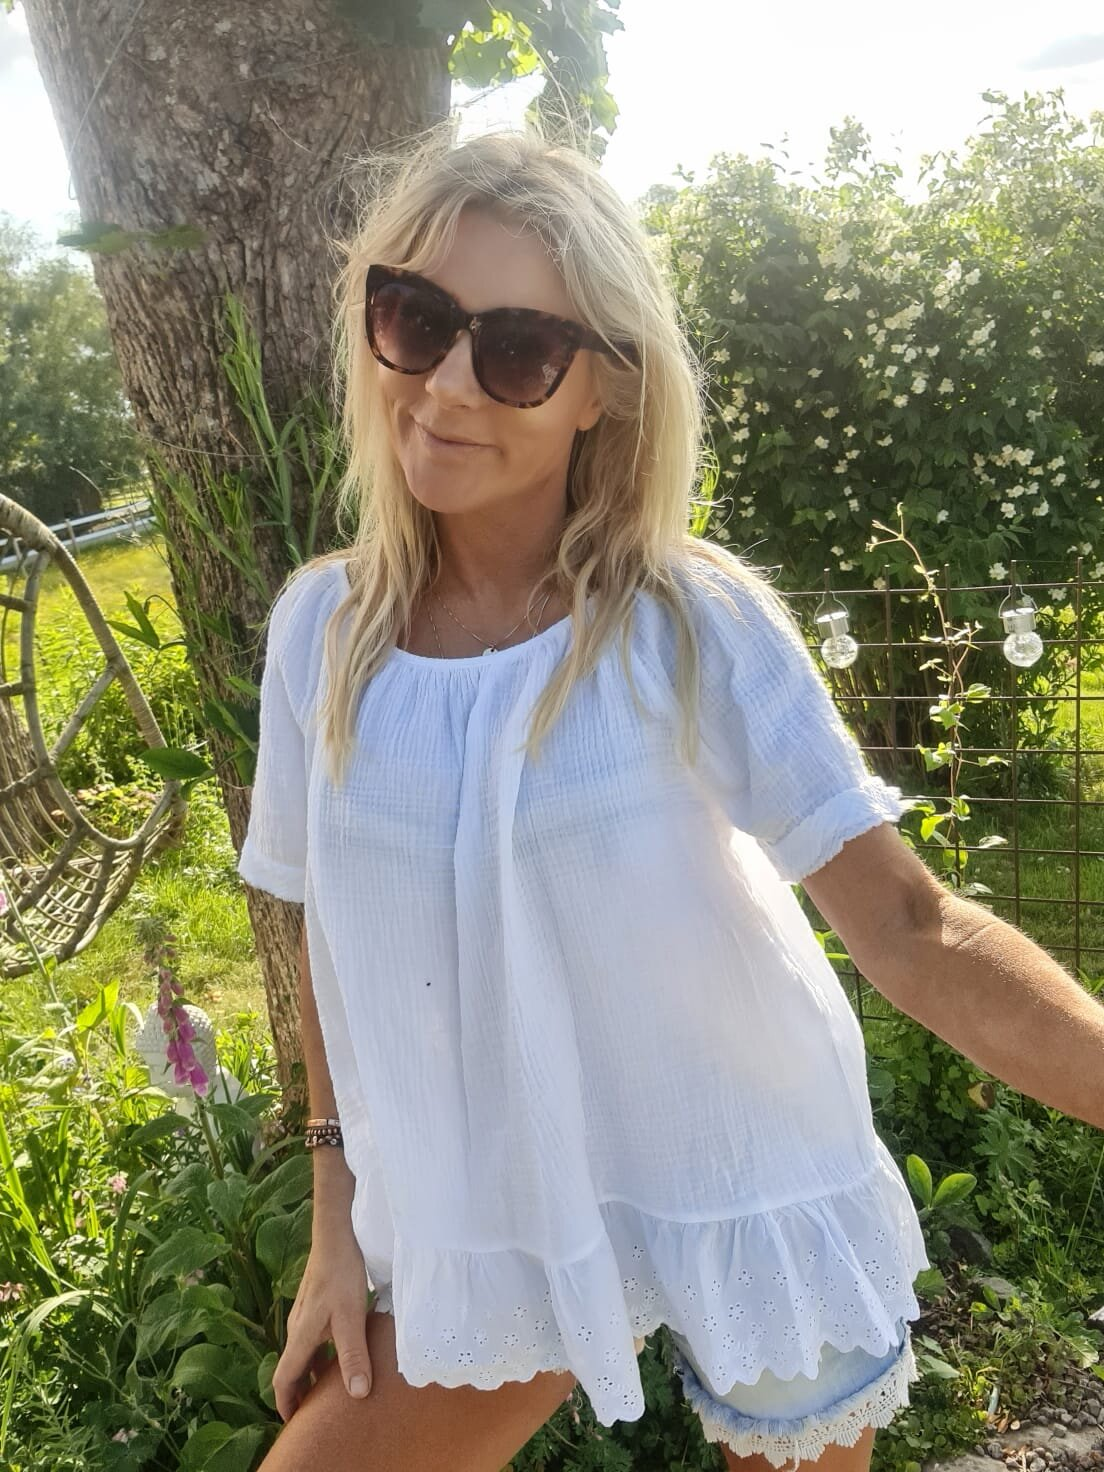 Christa top - Lace & Waffle - White